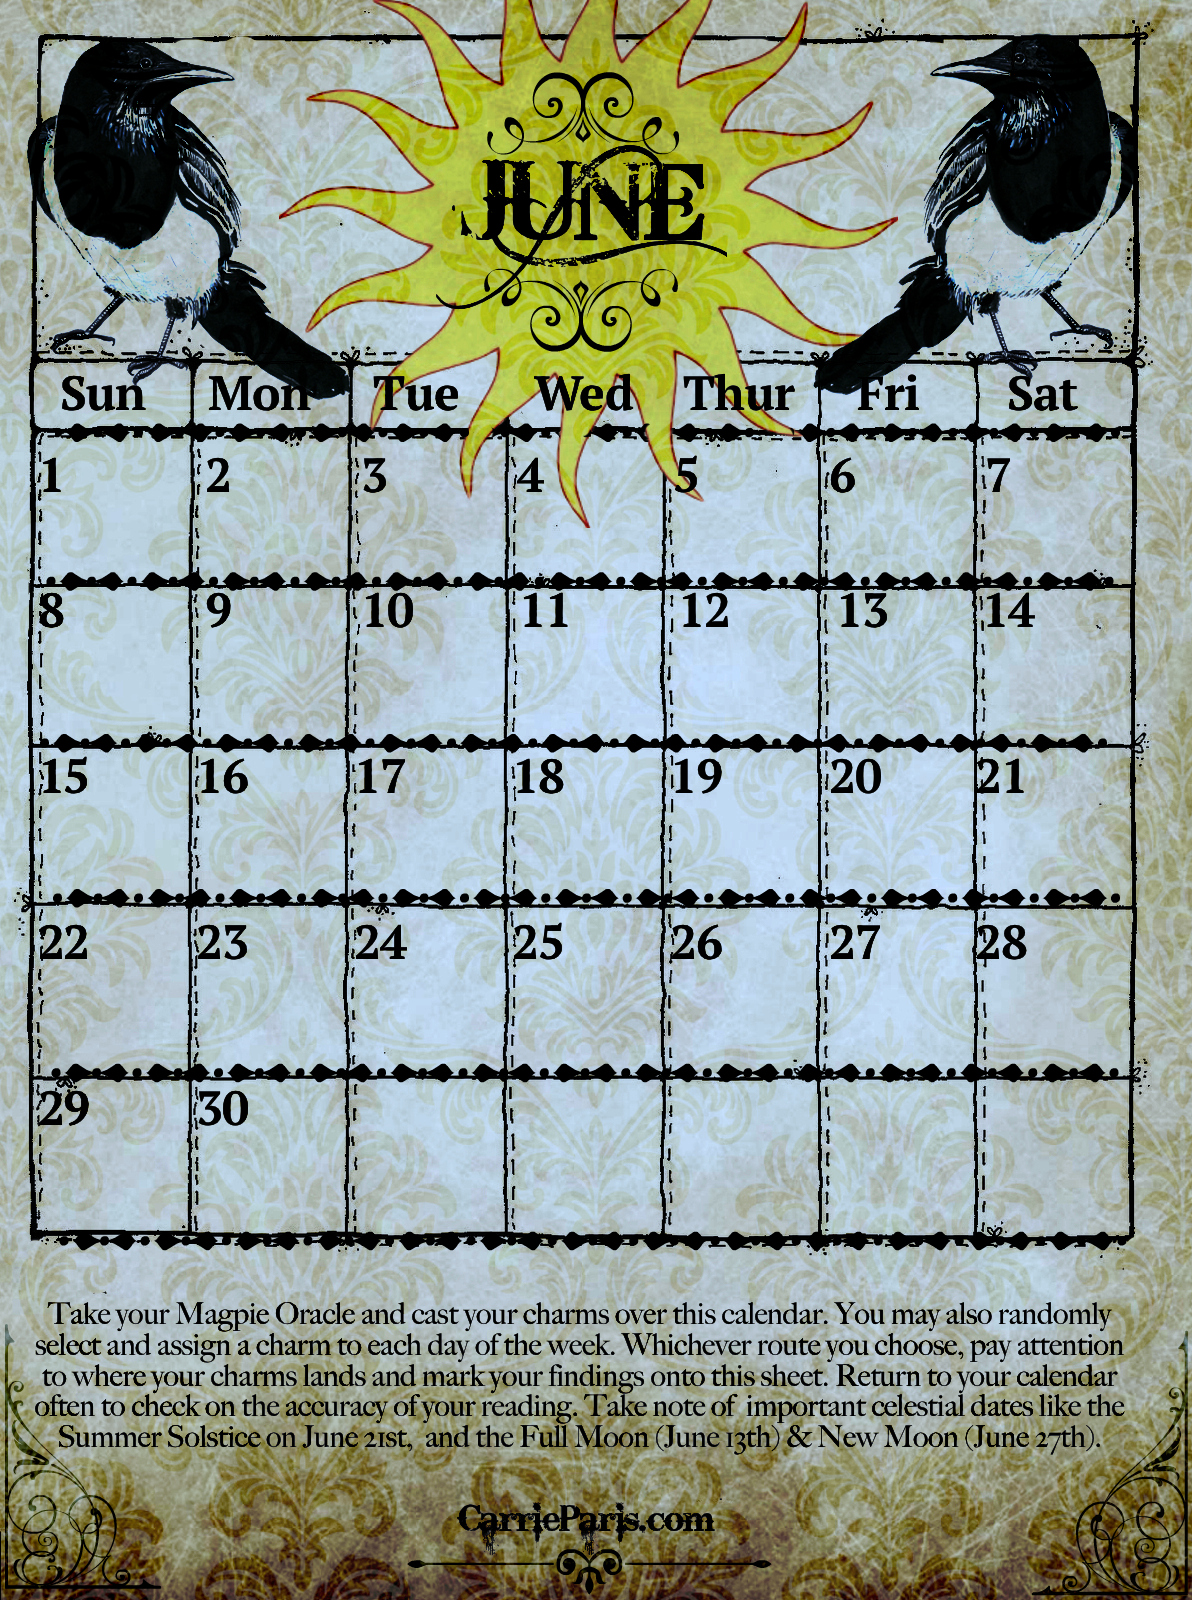 Magpie Oracle June 2014 Casting Calendar